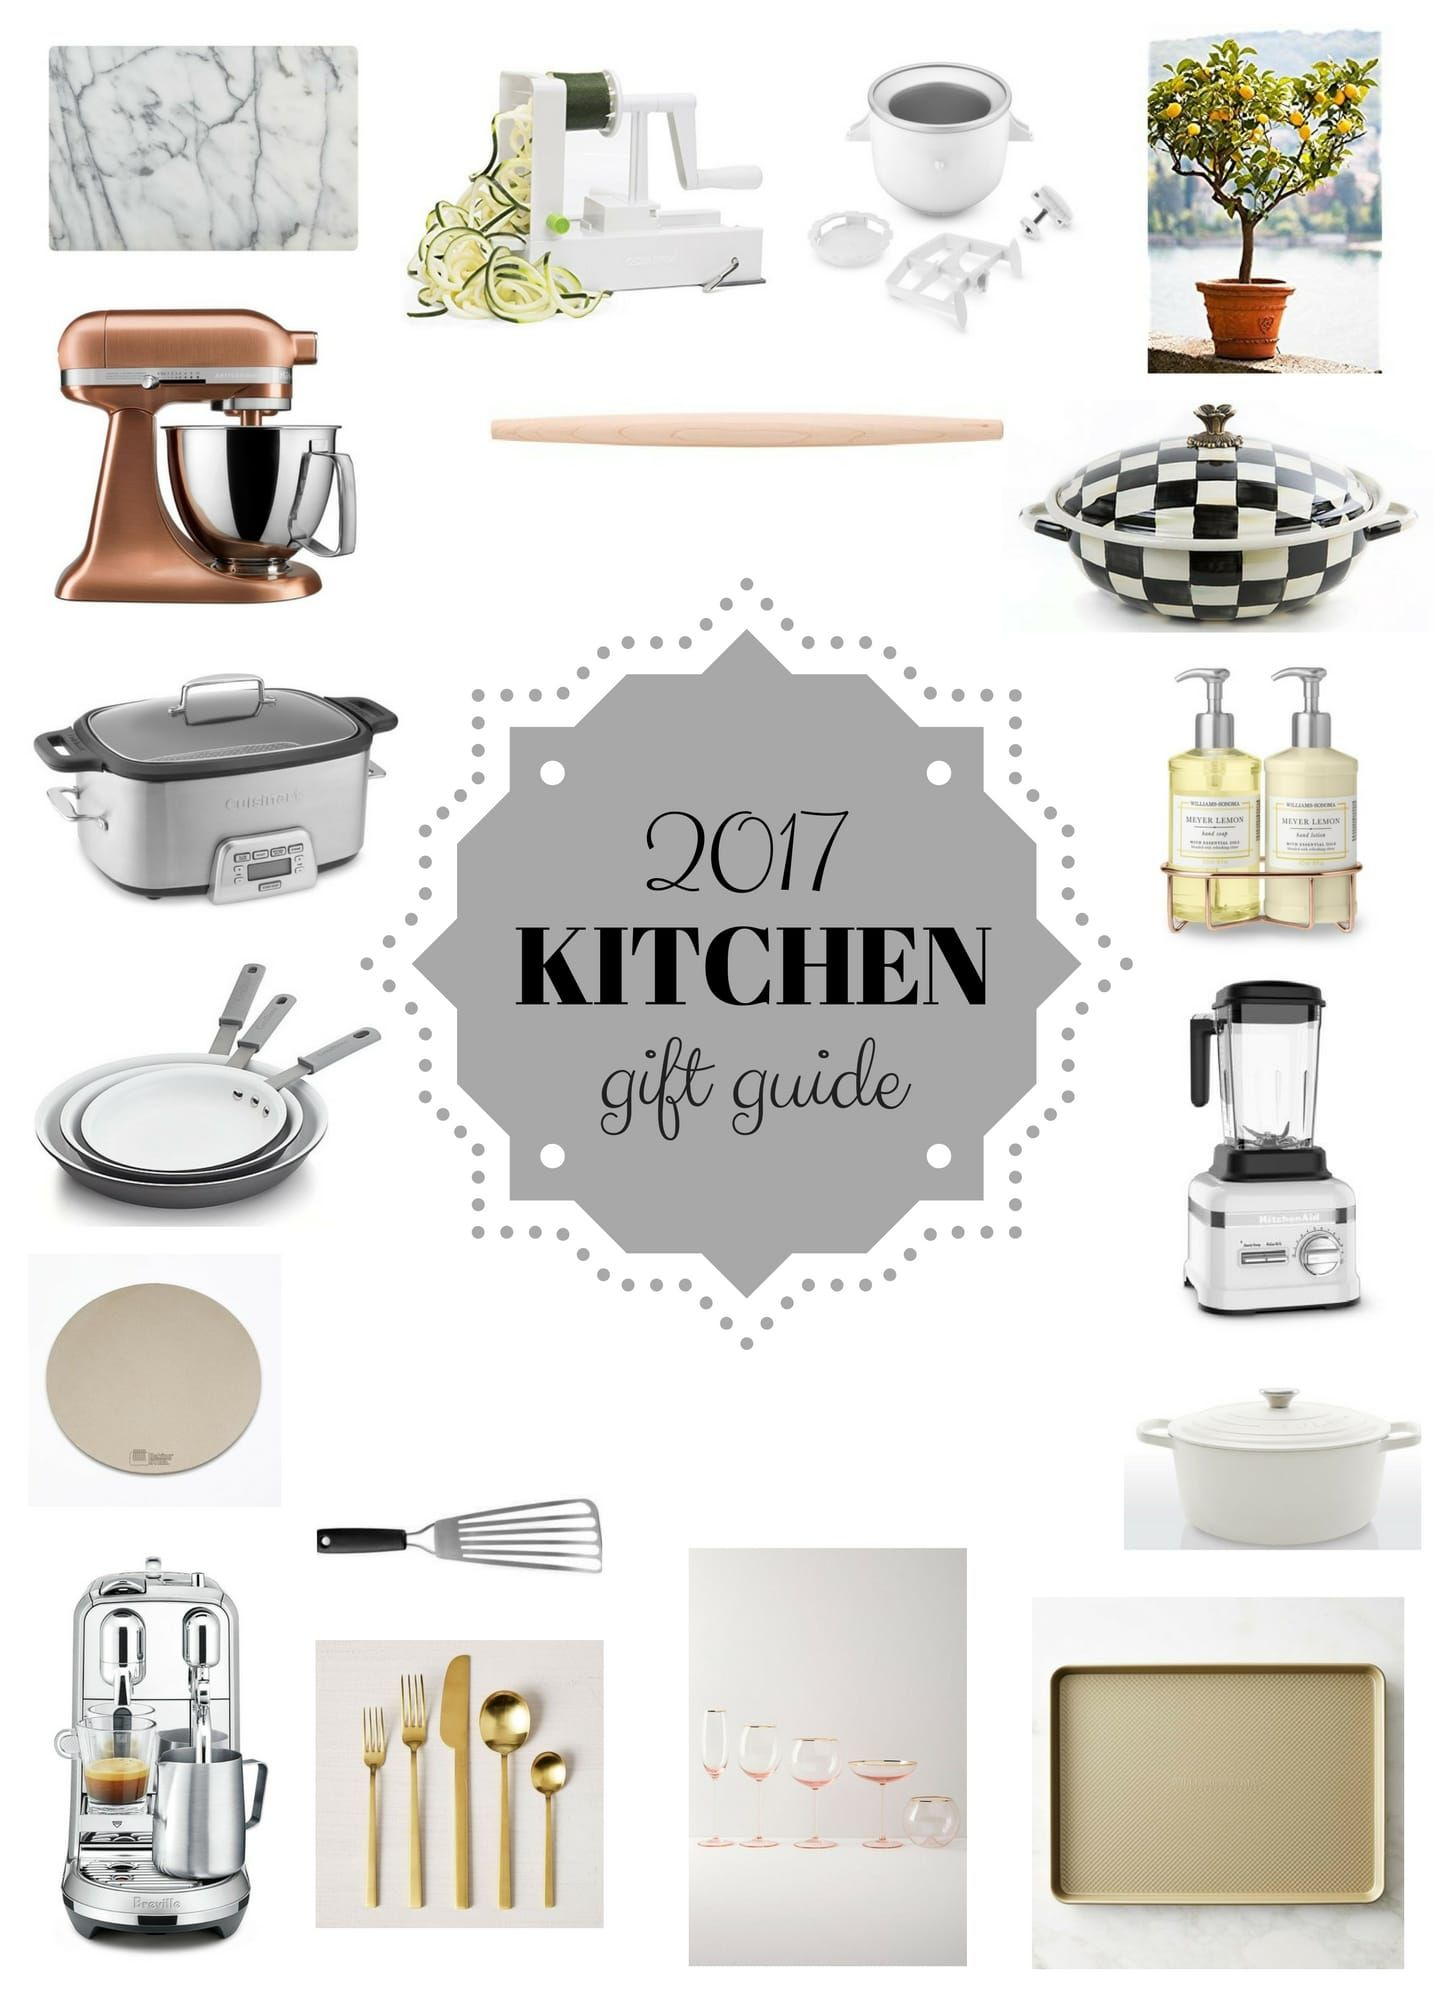 Kitchen Gift Guide 2017 Holiday Kitchen Gift Guide Kitchen Gift Kitchen Christmas Gifts Holiday Kitchen